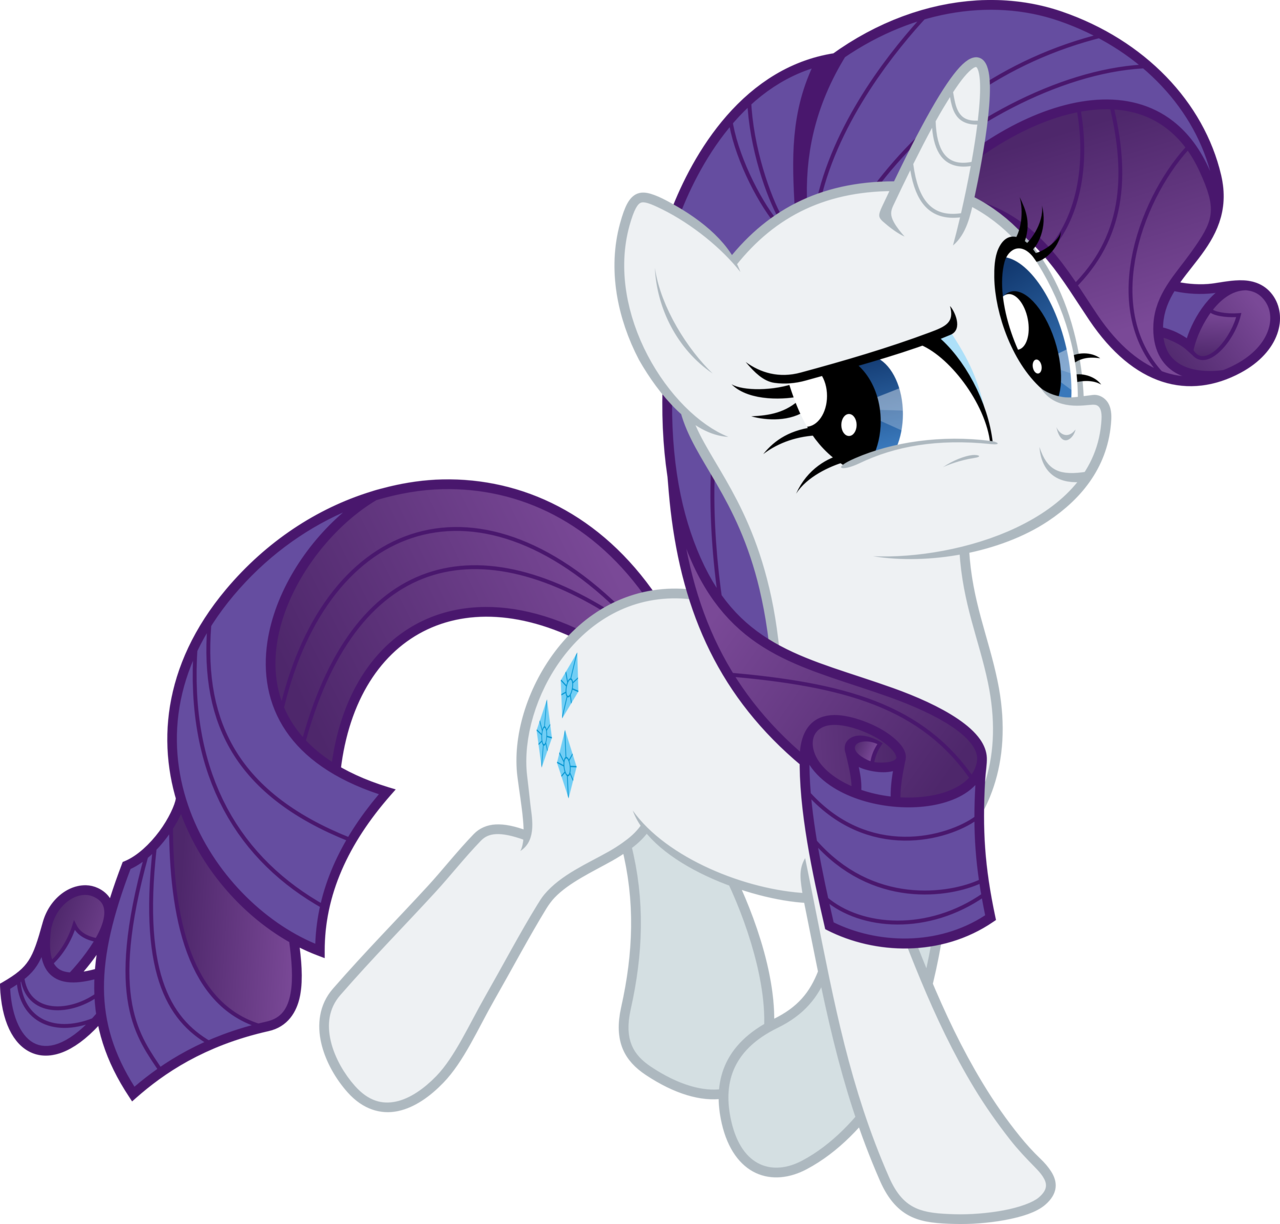 Rarity_walking_forward.png